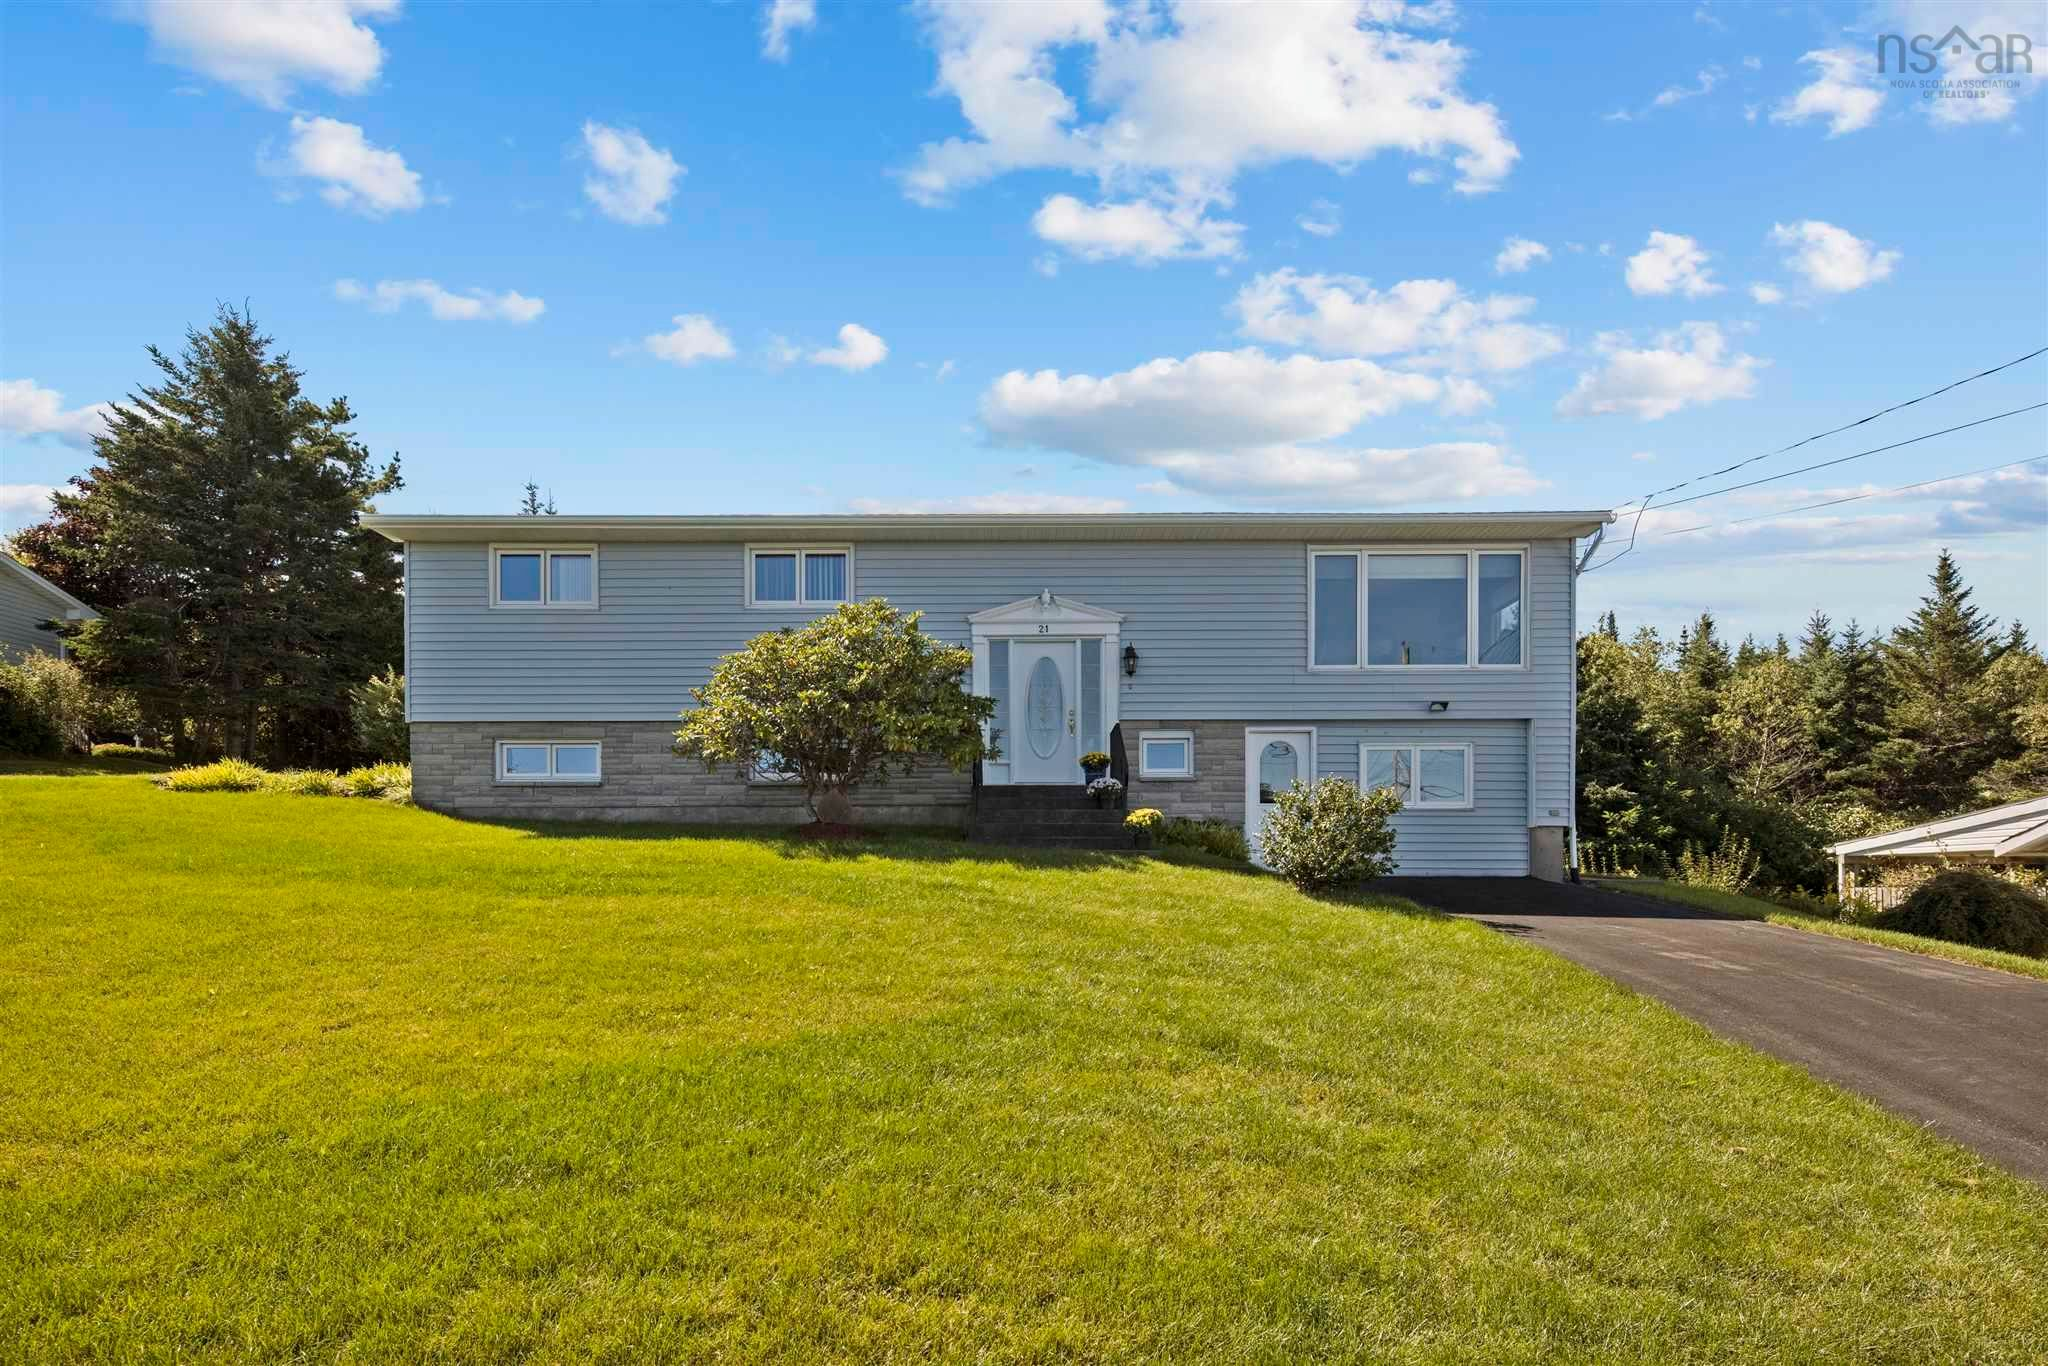 Main Photo: 21 Winston Drive in Herring Cove: 8-Armdale/Purcell`s Cove/Herring Cove Residential for sale (Halifax-Dartmouth)  : MLS®# 202123922